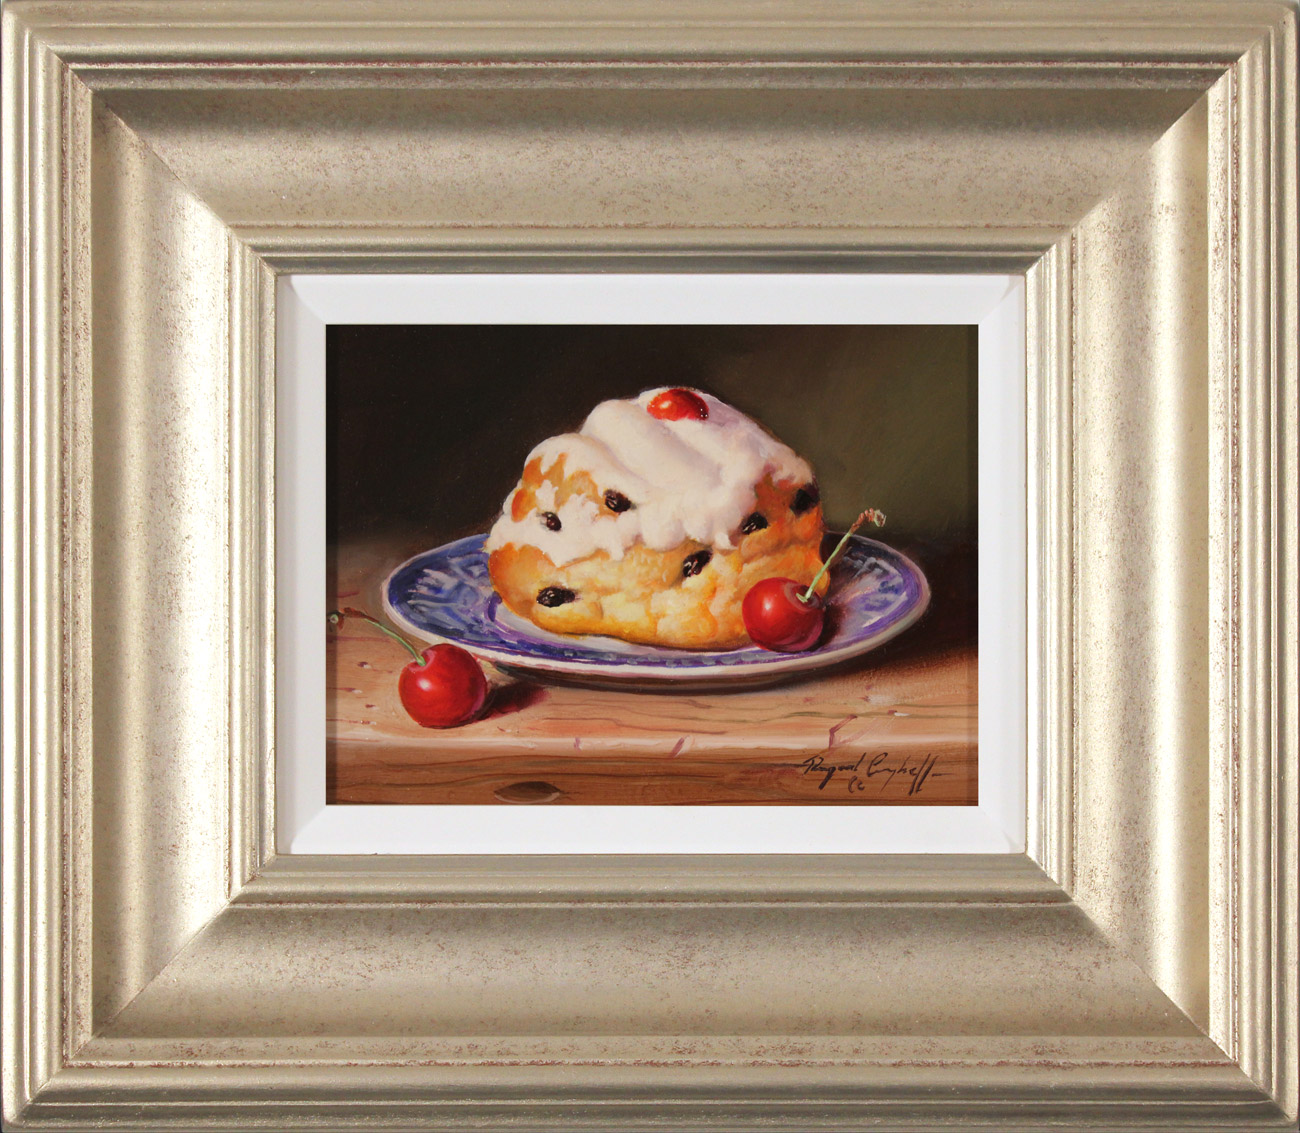 Raymond Campbell, Original oil painting on panel, Belgian Bun with Cherries , click to enlarge